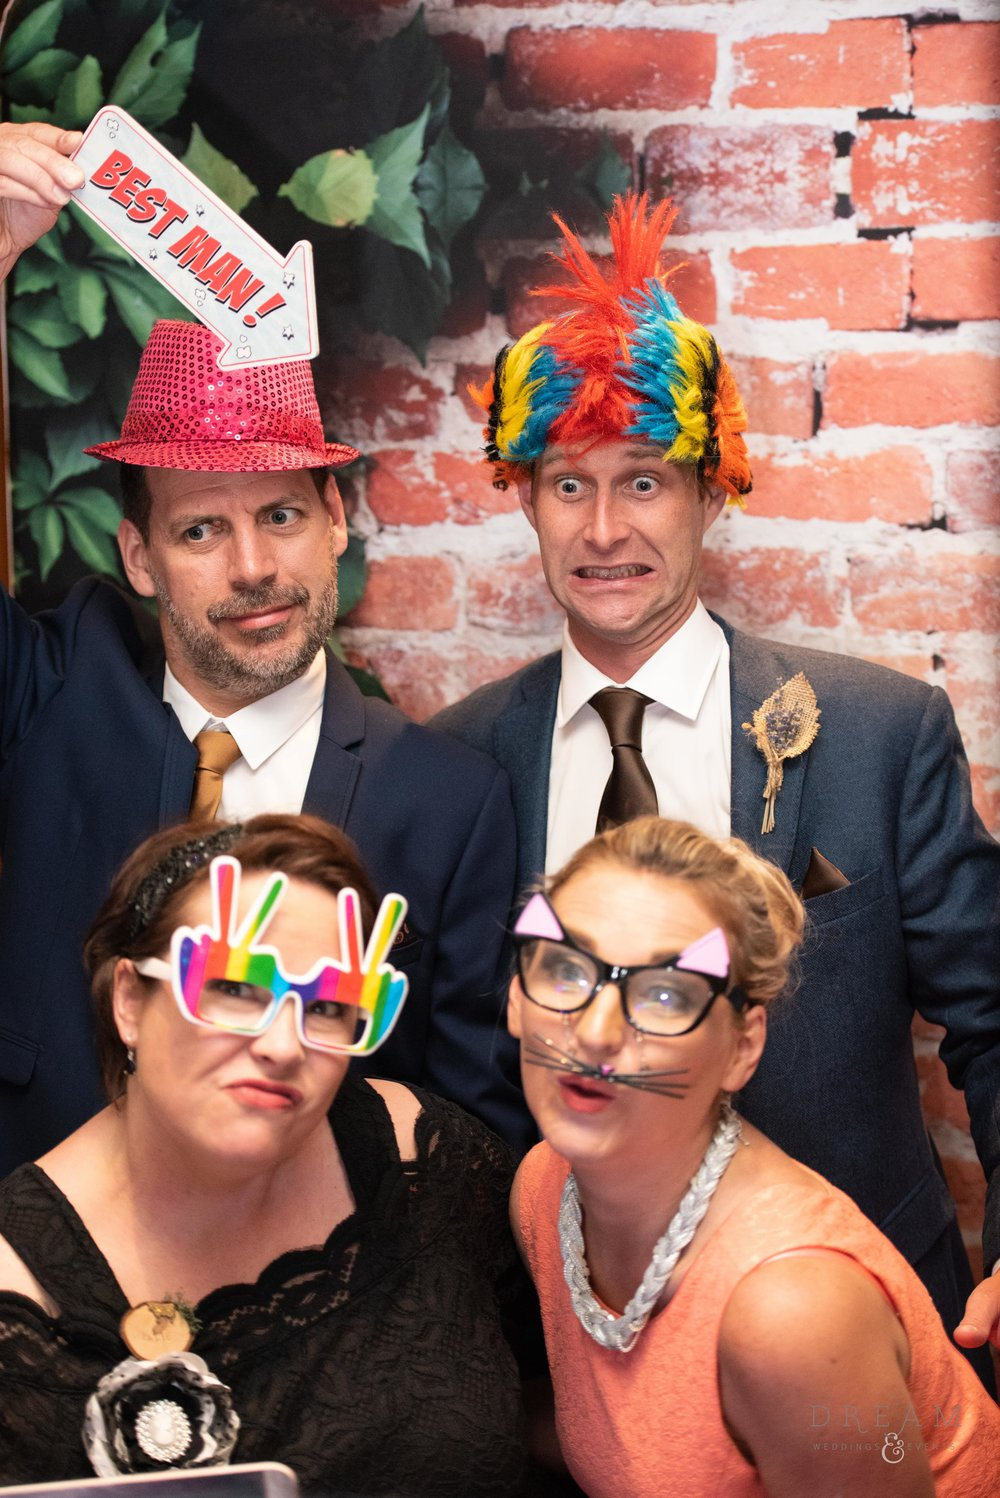 Hire Party Magic Mirror Photo Booth Nottingham, Derby, Leicester, East Midlands.